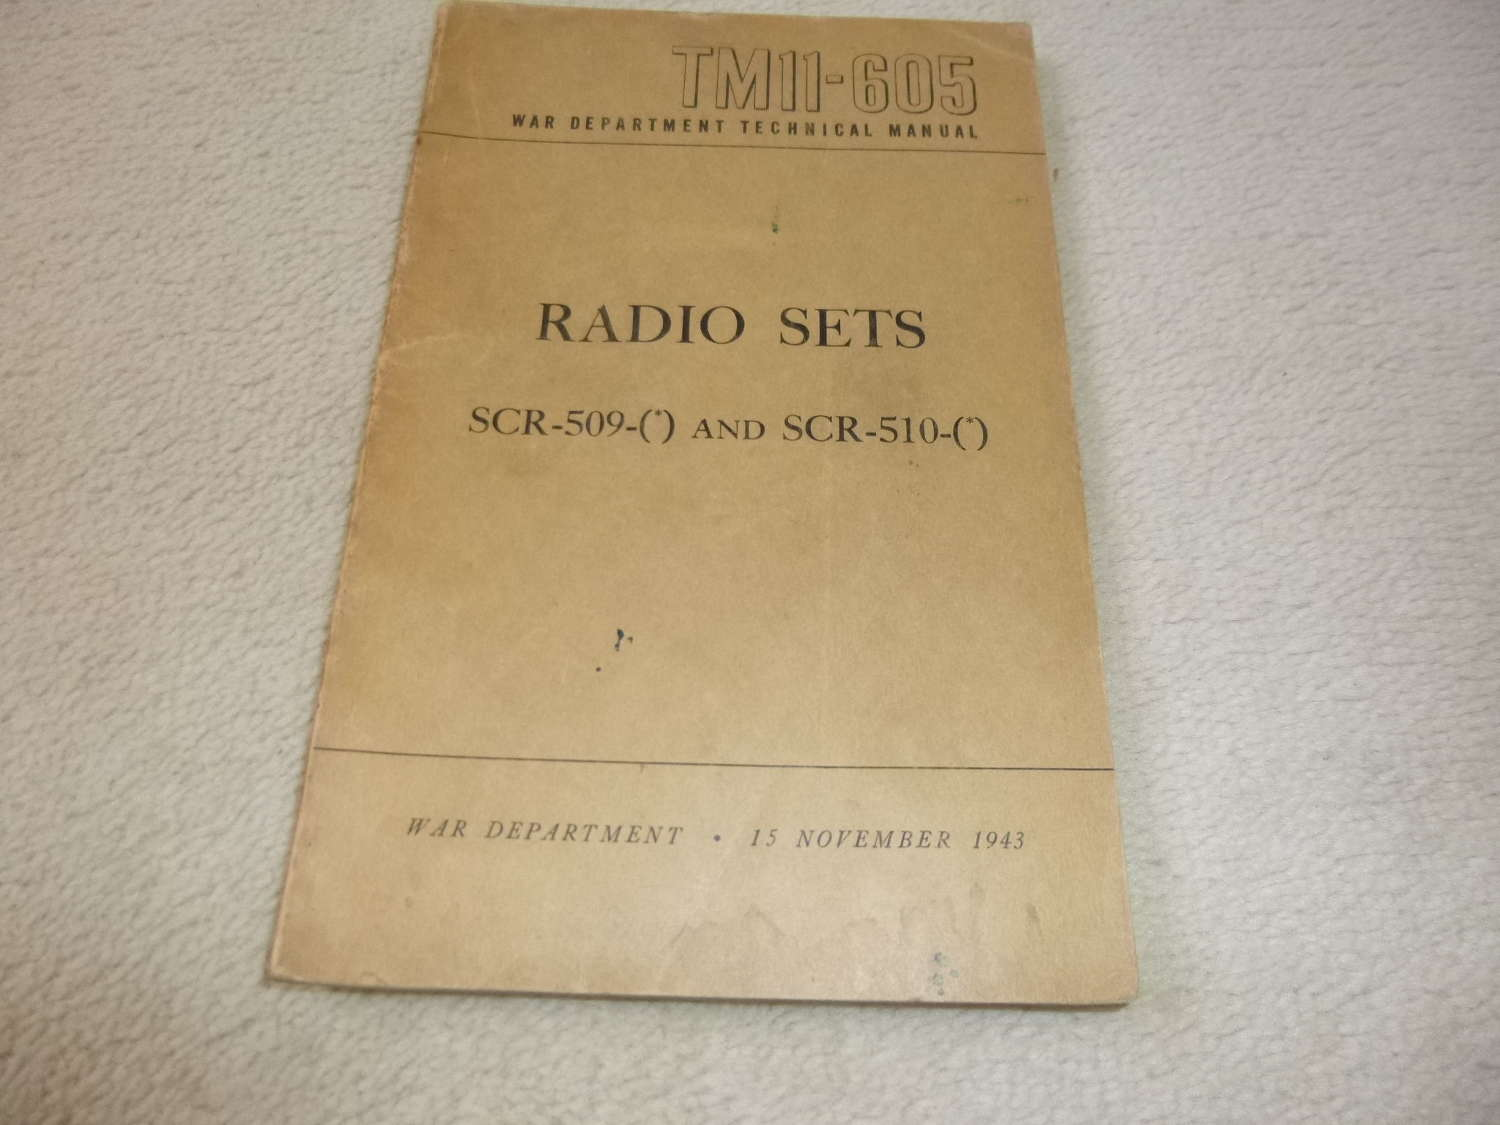 US Army TM11-605 Radio Sets SCR 509-510 Manual